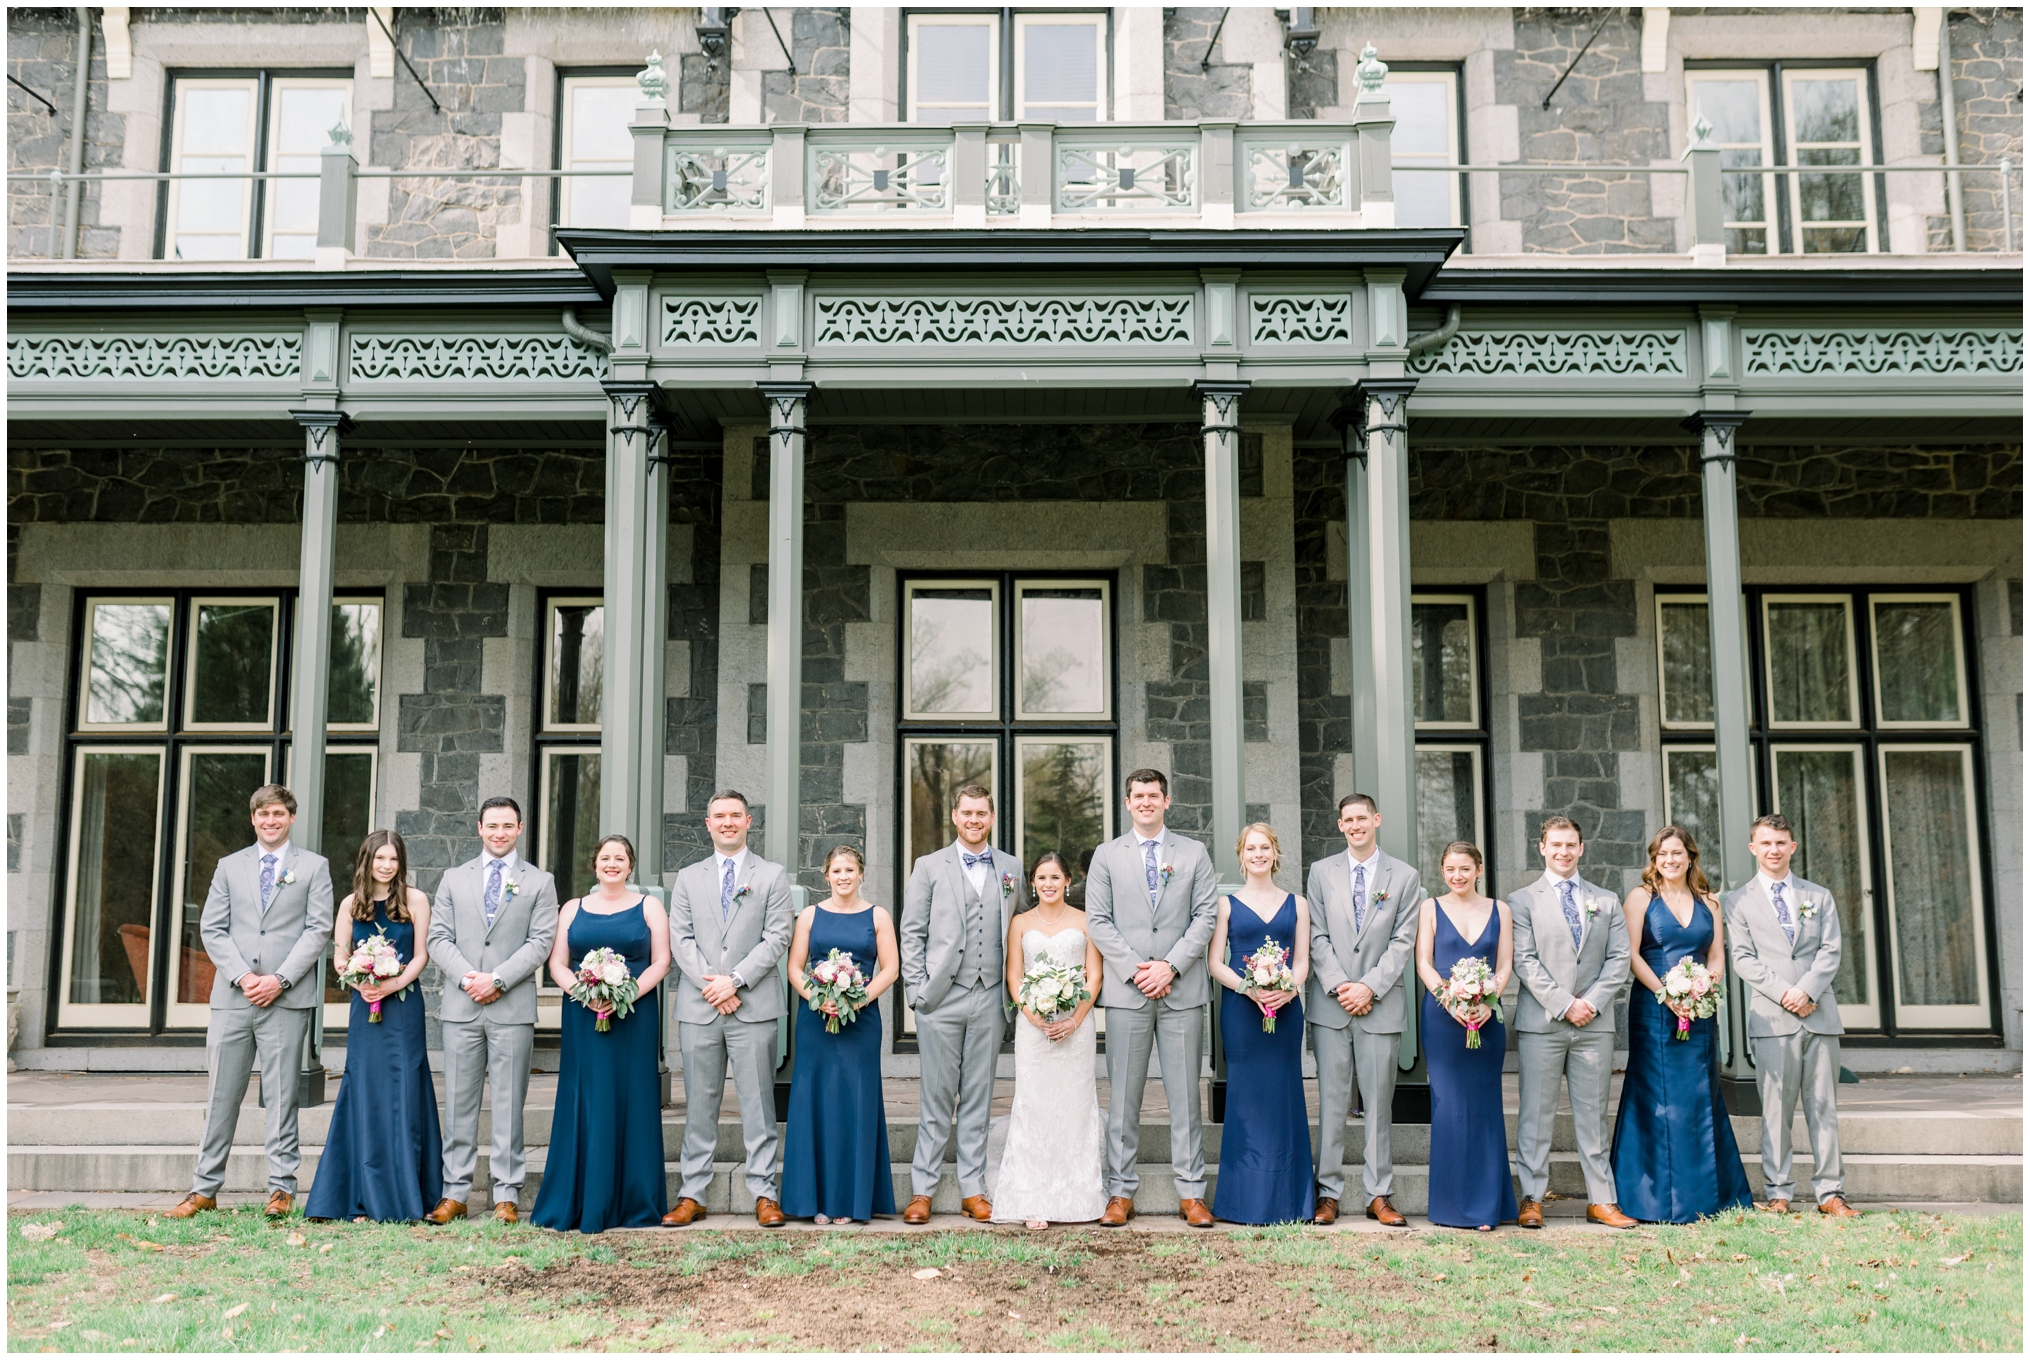 Krista Brackin Photography | April Wedding at The Carriage House at Rockwood Park_0064.jpg